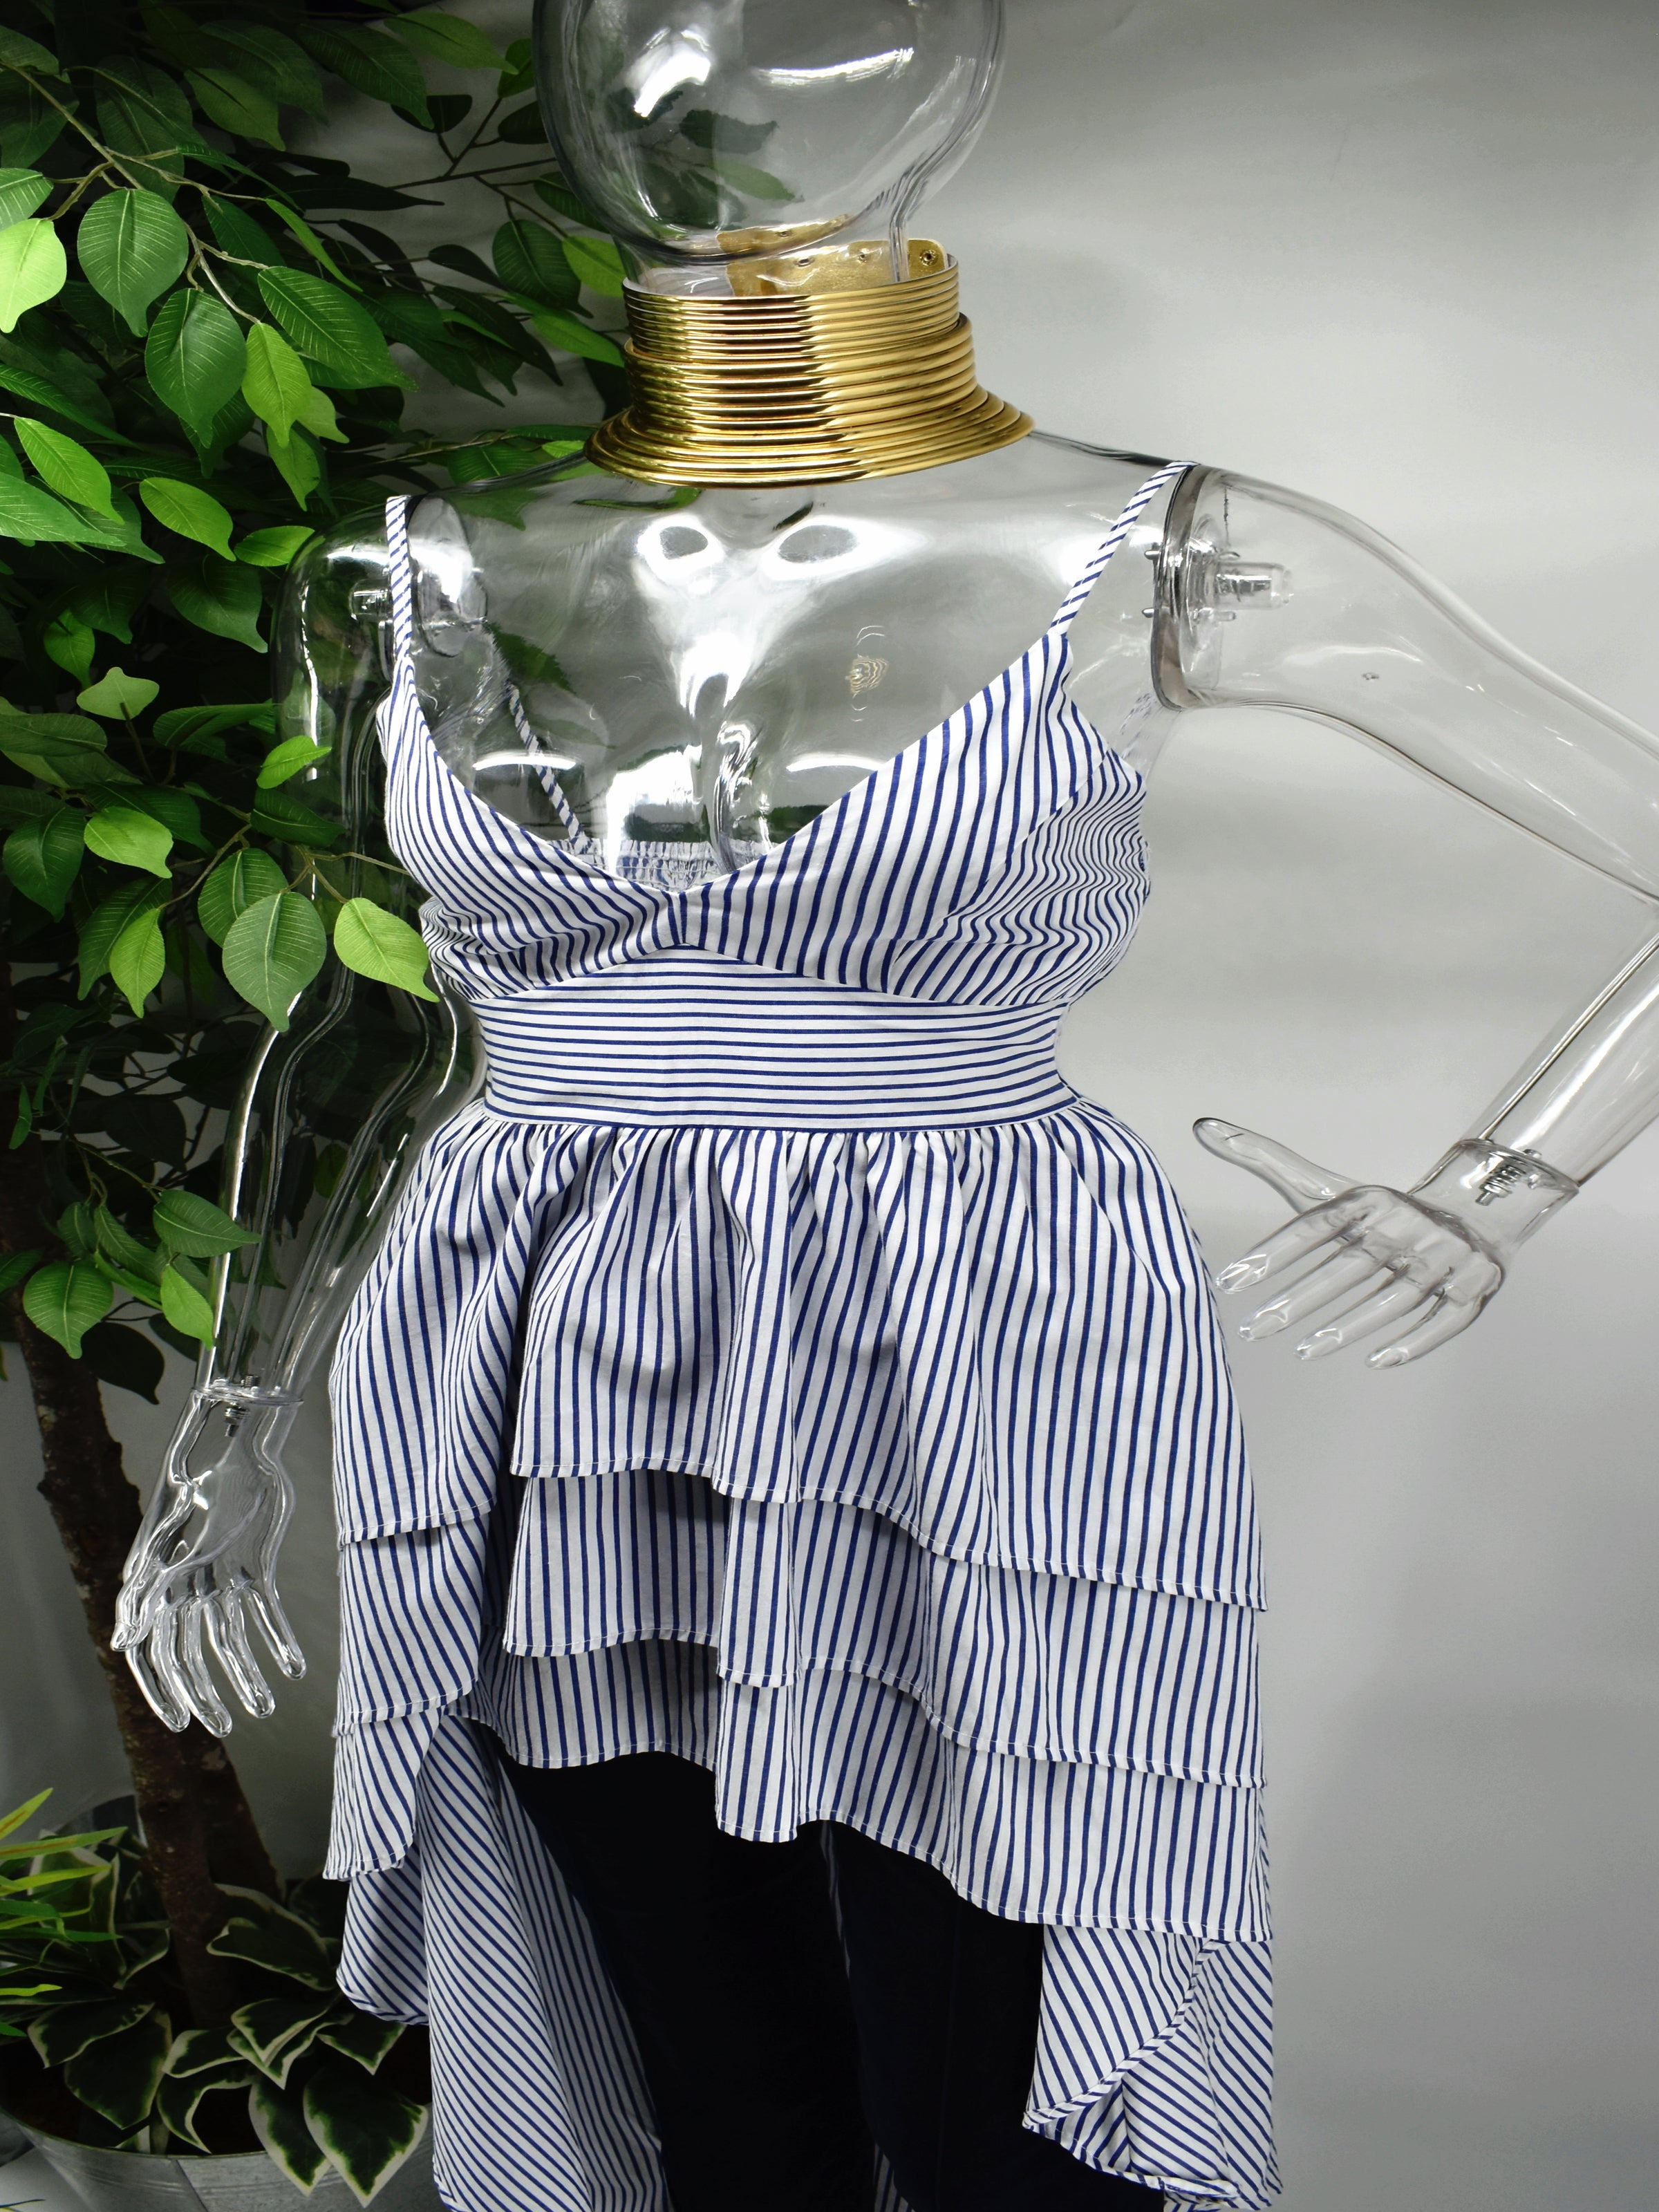 You wont regret taking a chance on our Barbette Stripe Top.  Our Barbette blue and white stripe top is a beauty for most occasions. It has a sweetheart neckline accompanied by spagetti straps which falls into a peplum tiered hemline.